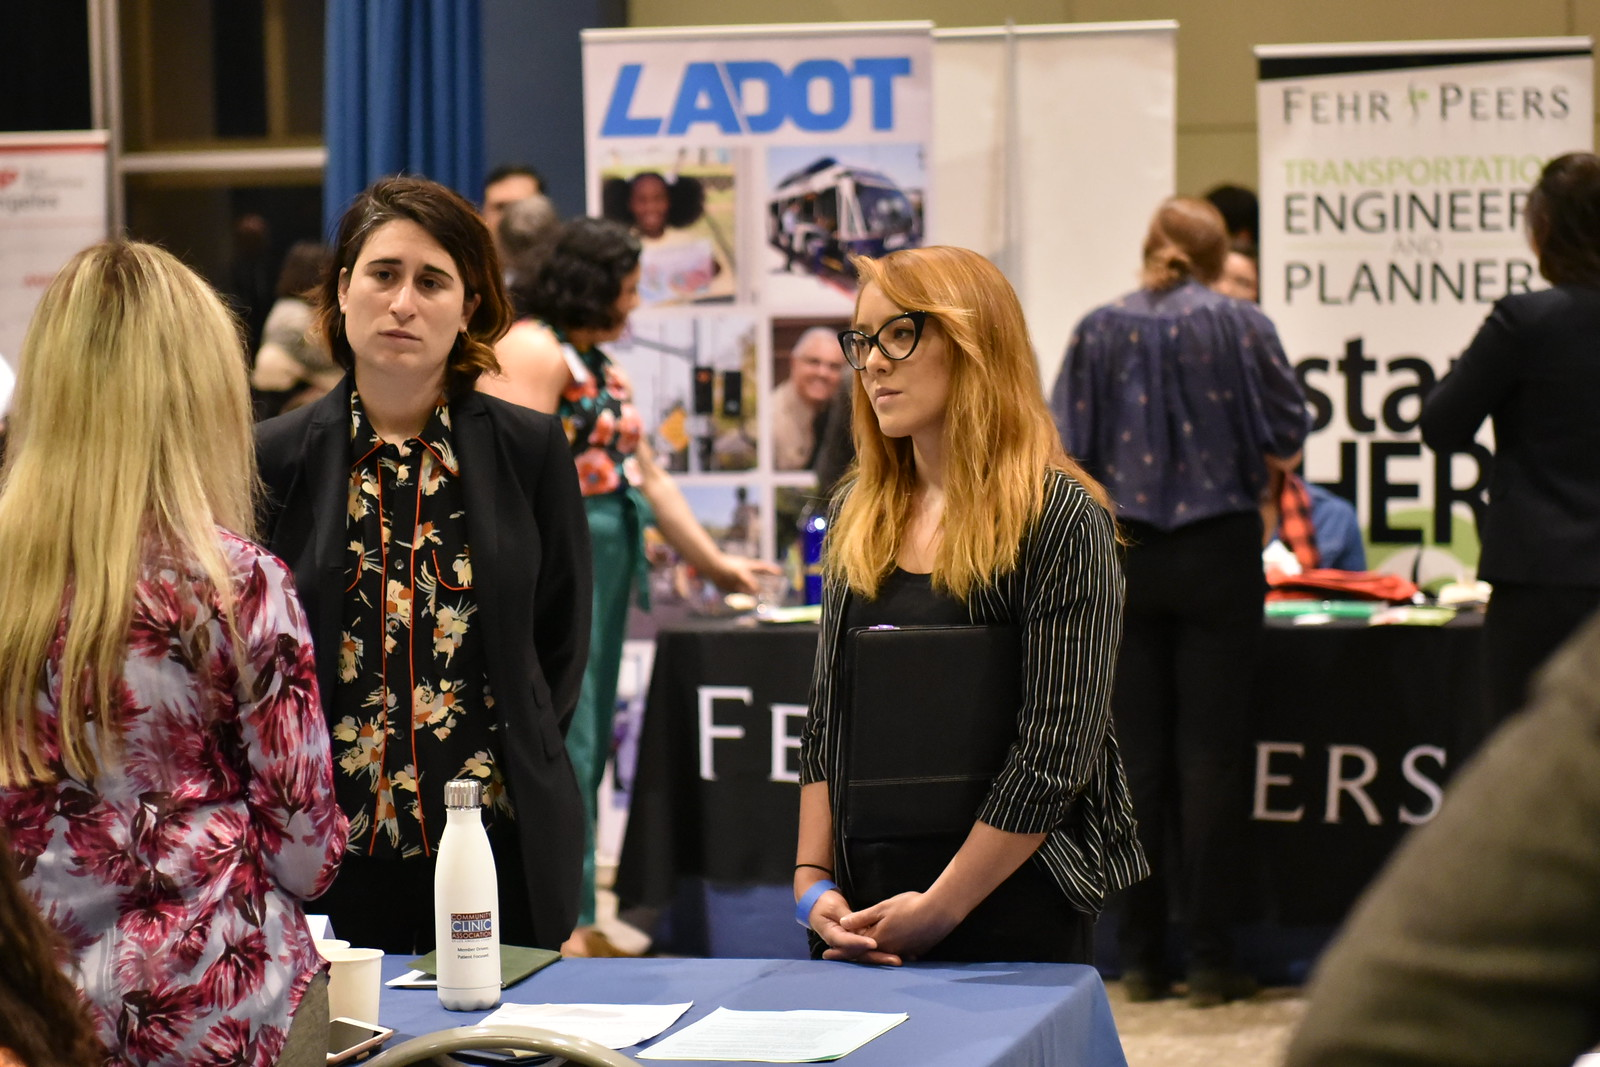 2019 Job and Internship Career Fair